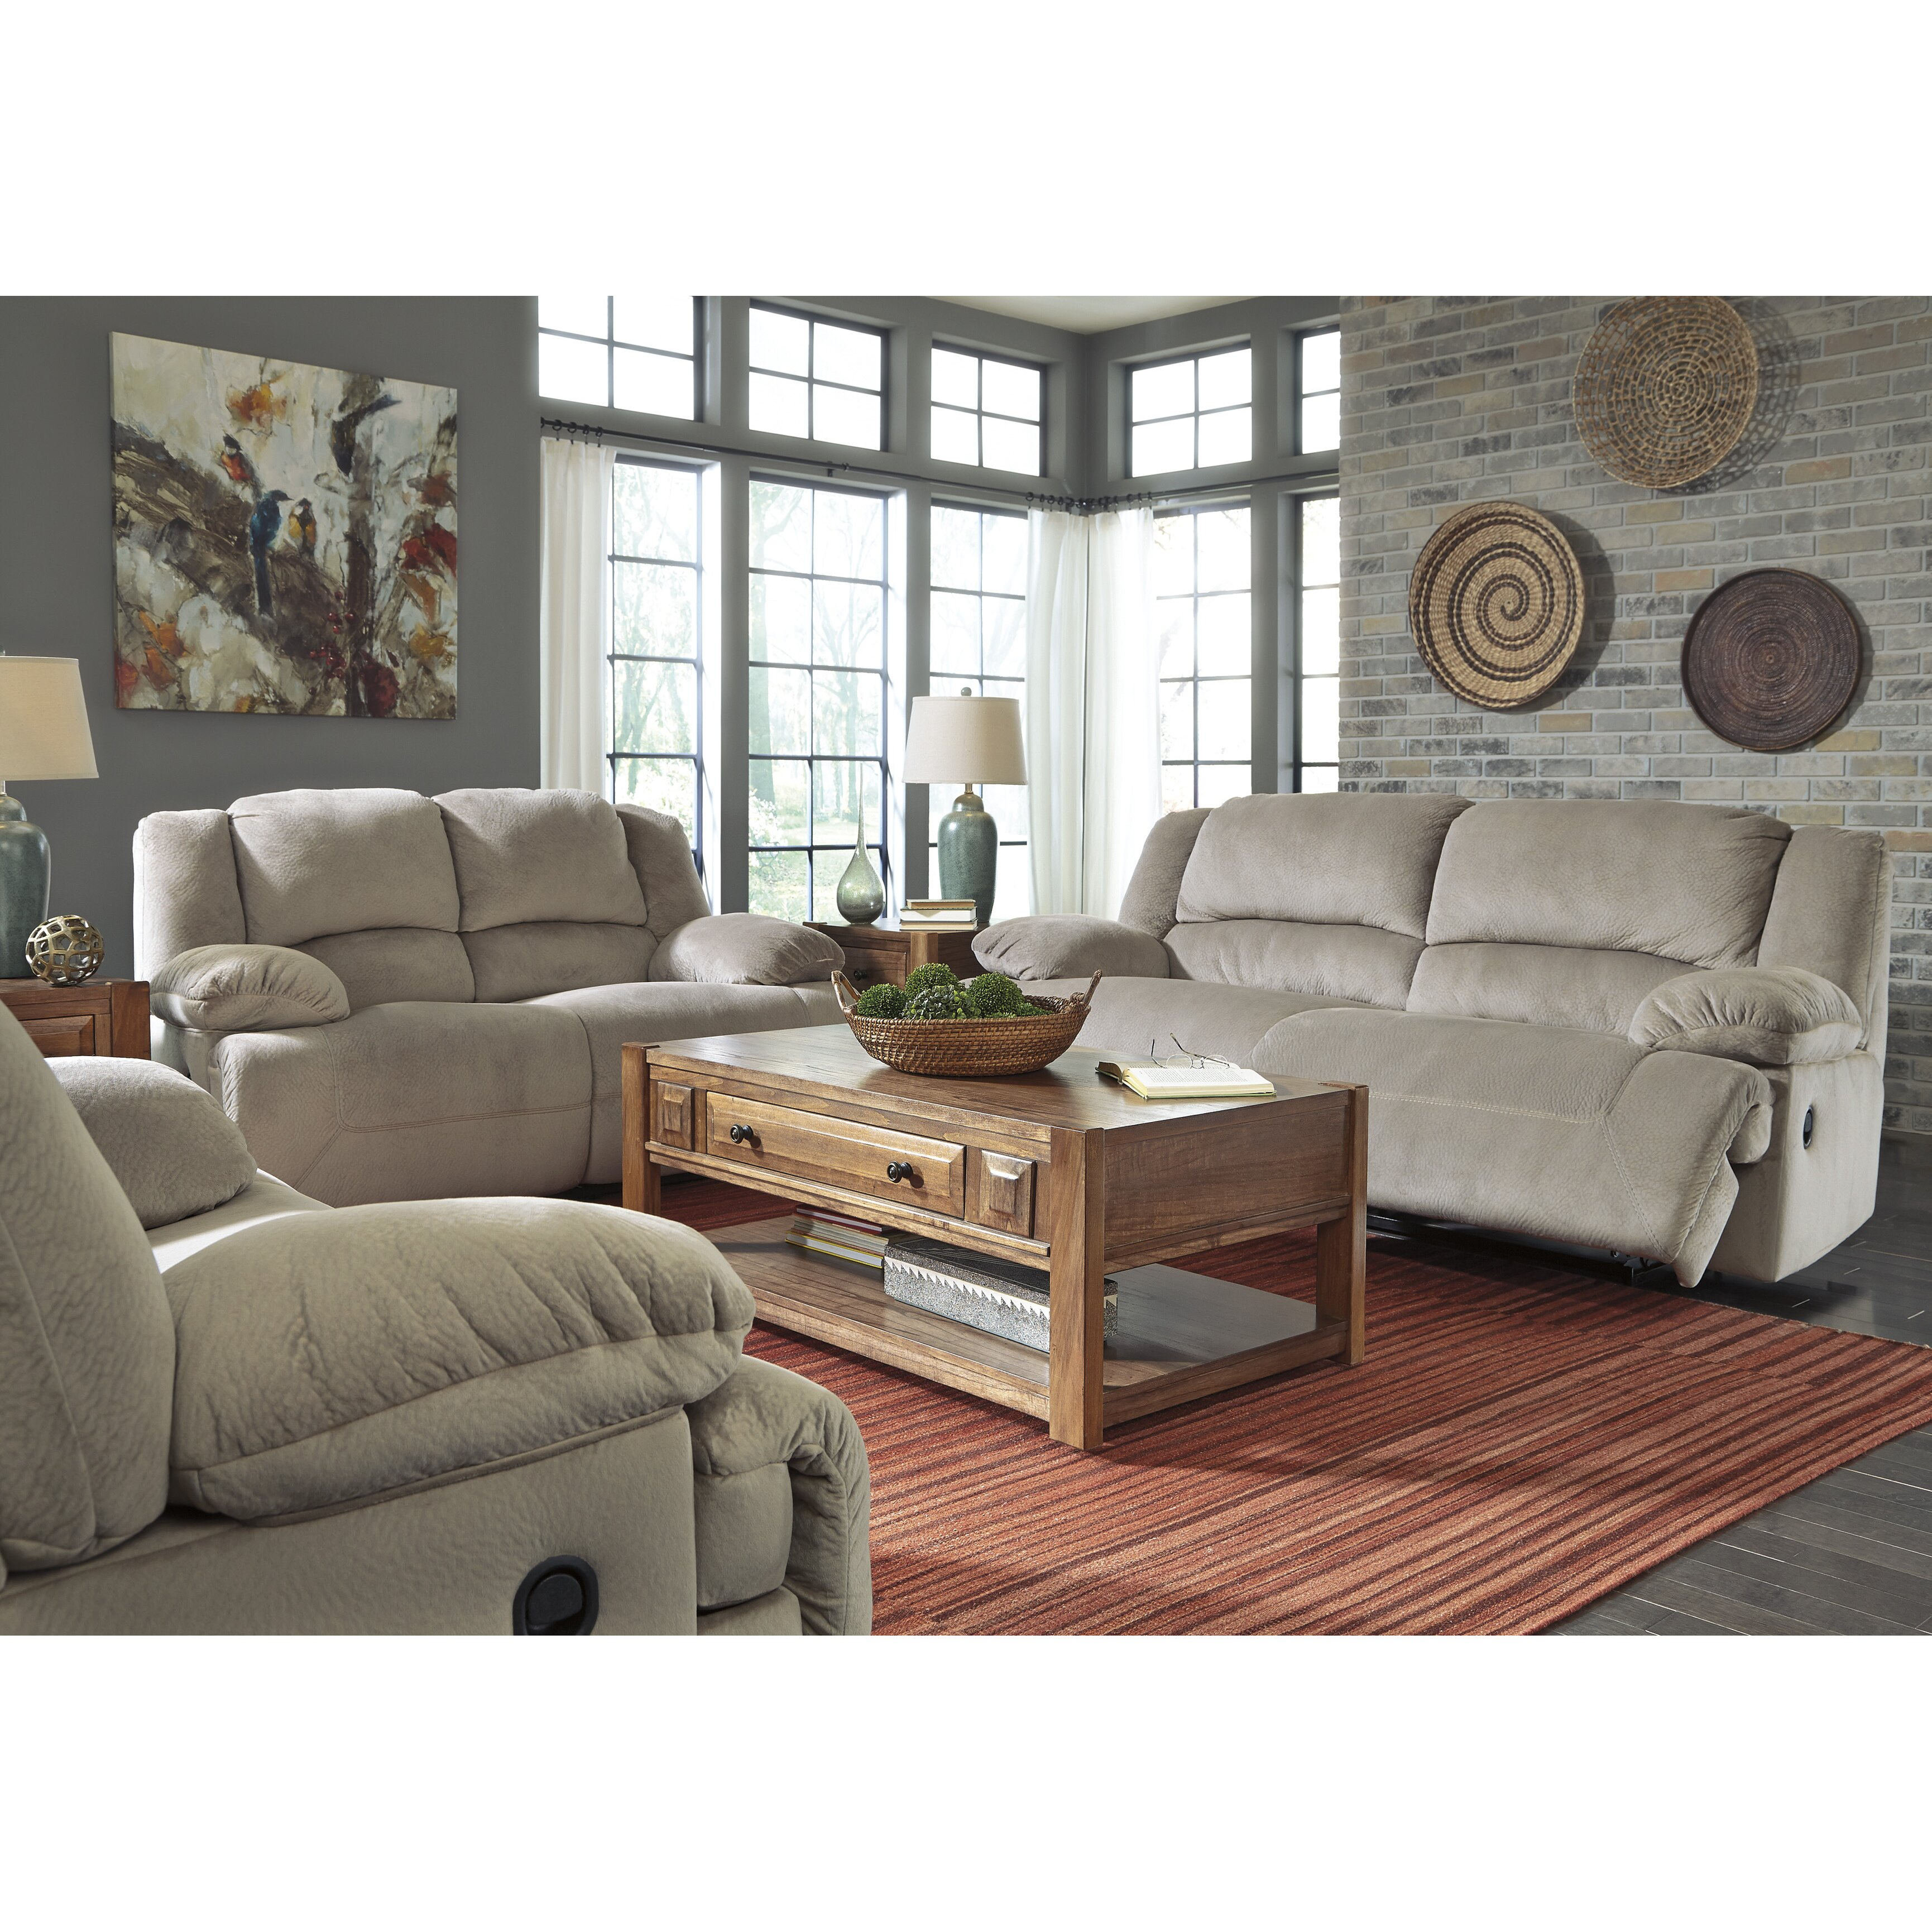 Signature Design By Ashley Tolette 2 Seat Reclining Sofa Reviews